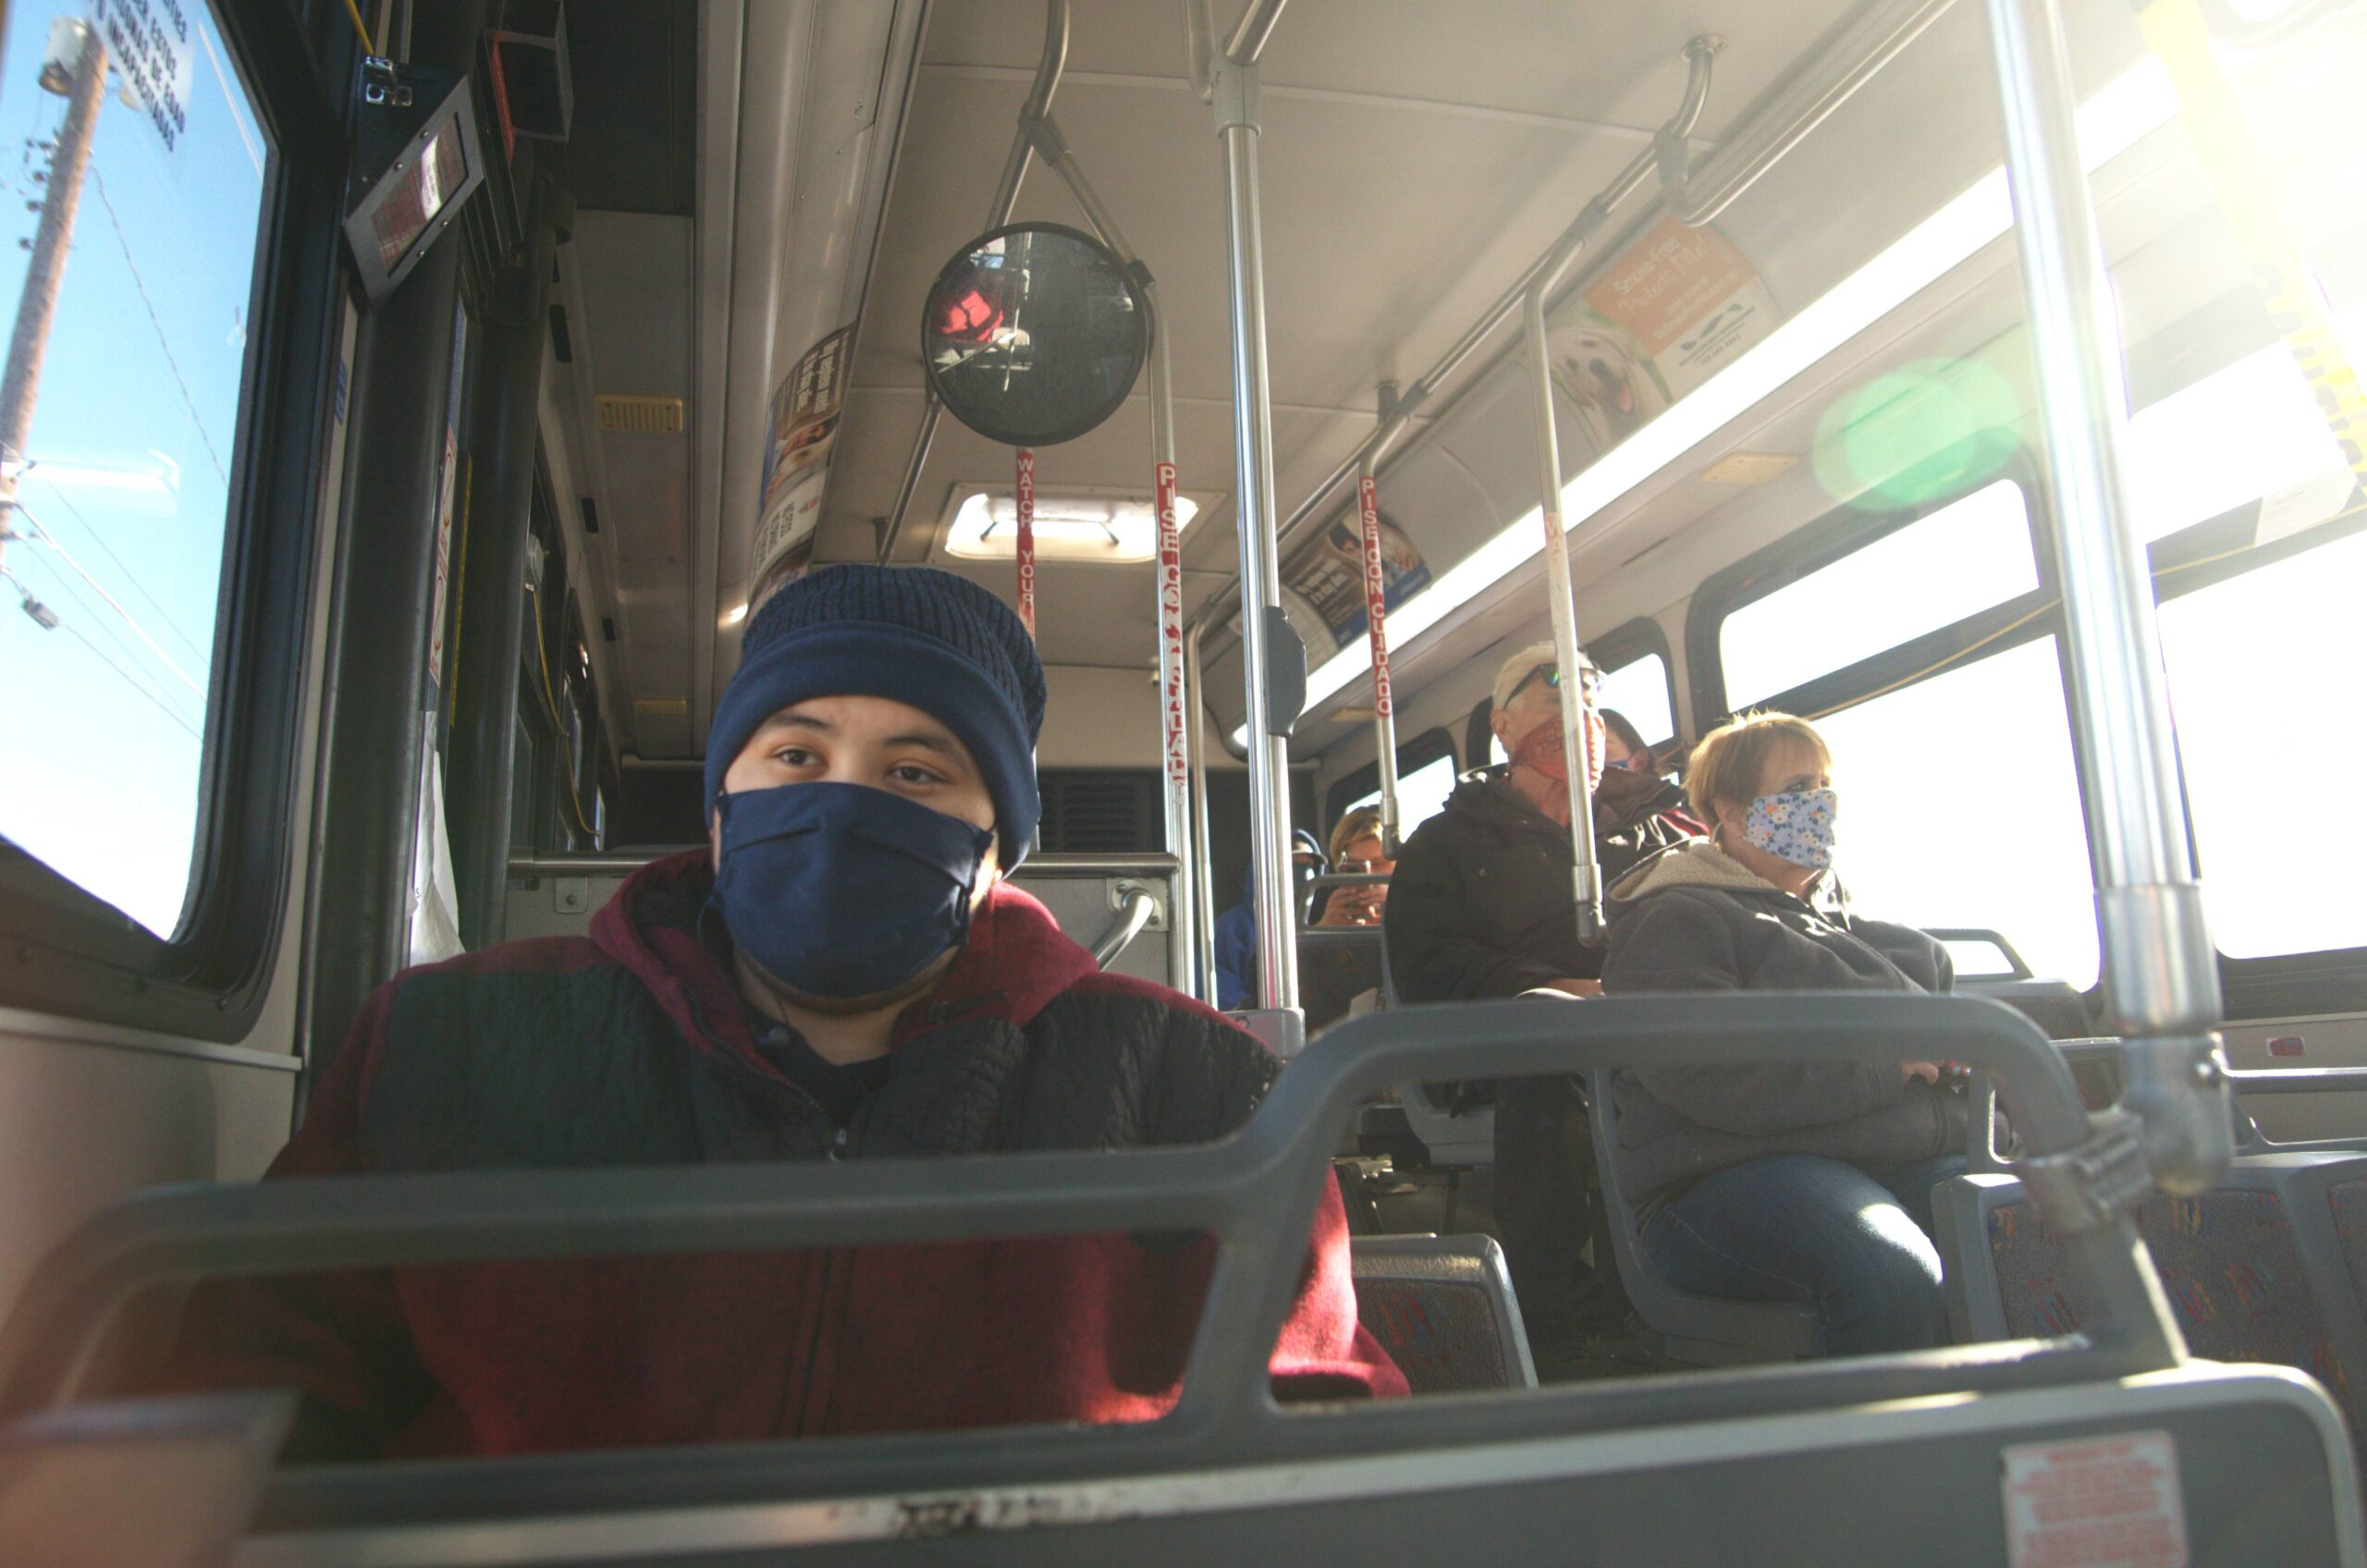 Jesse Espinoza, left, has dreams of getting into the entertainment business. On Wednesday, Dec. 16, 2020, he was riding Pueblo Transit to a plasma center.